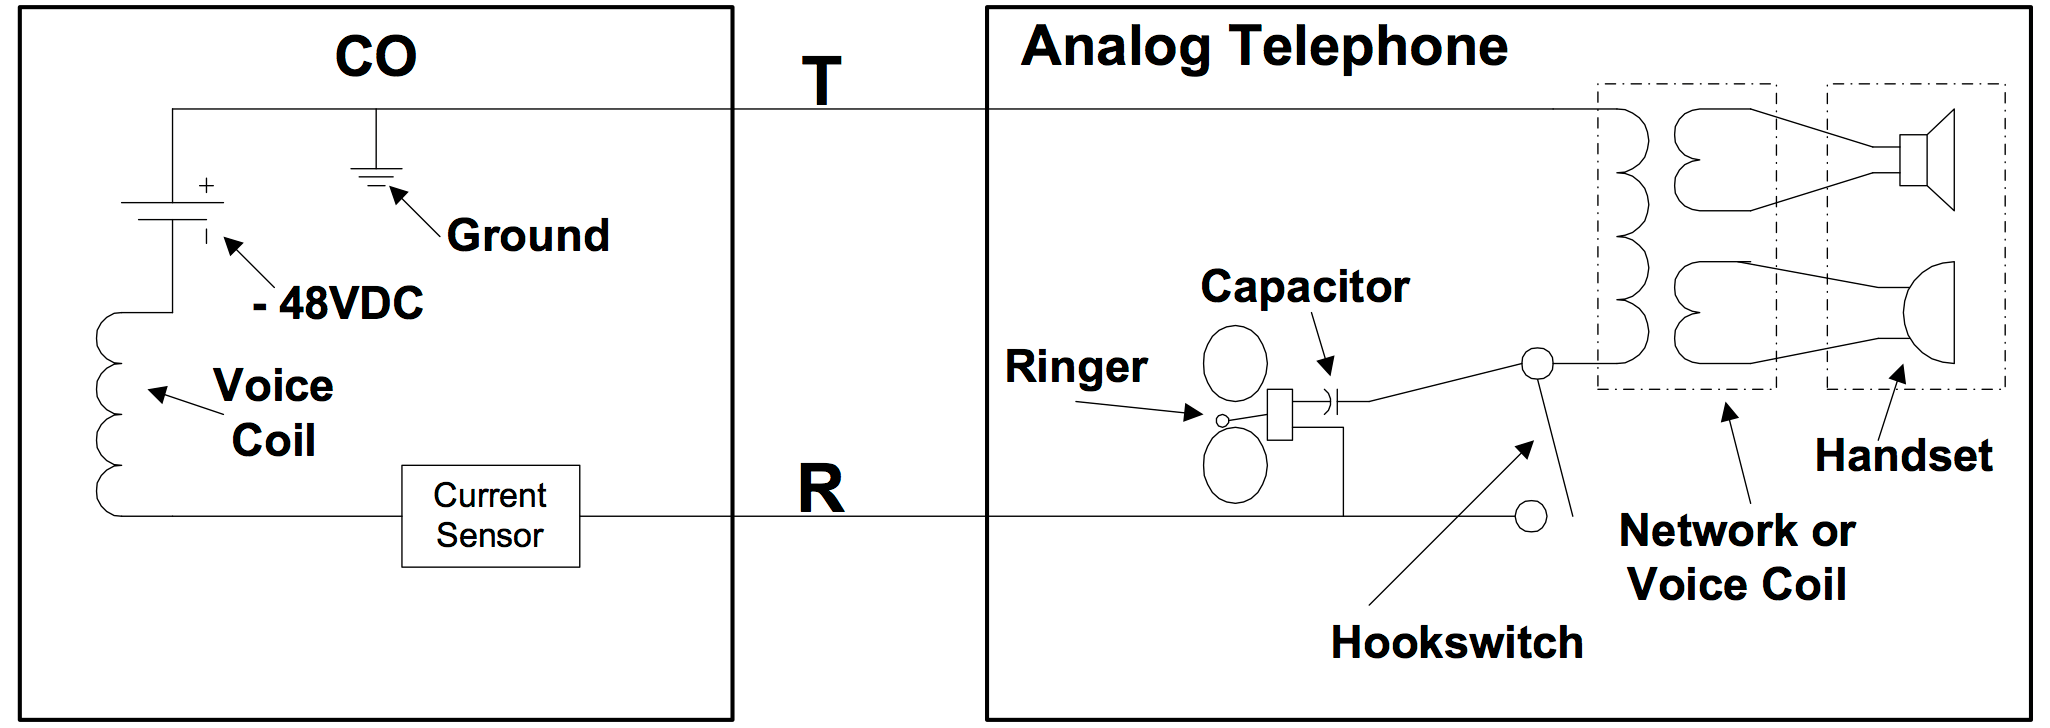 fig 5 all about analog lines Residential Telephone Wiring Diagram at soozxer.org